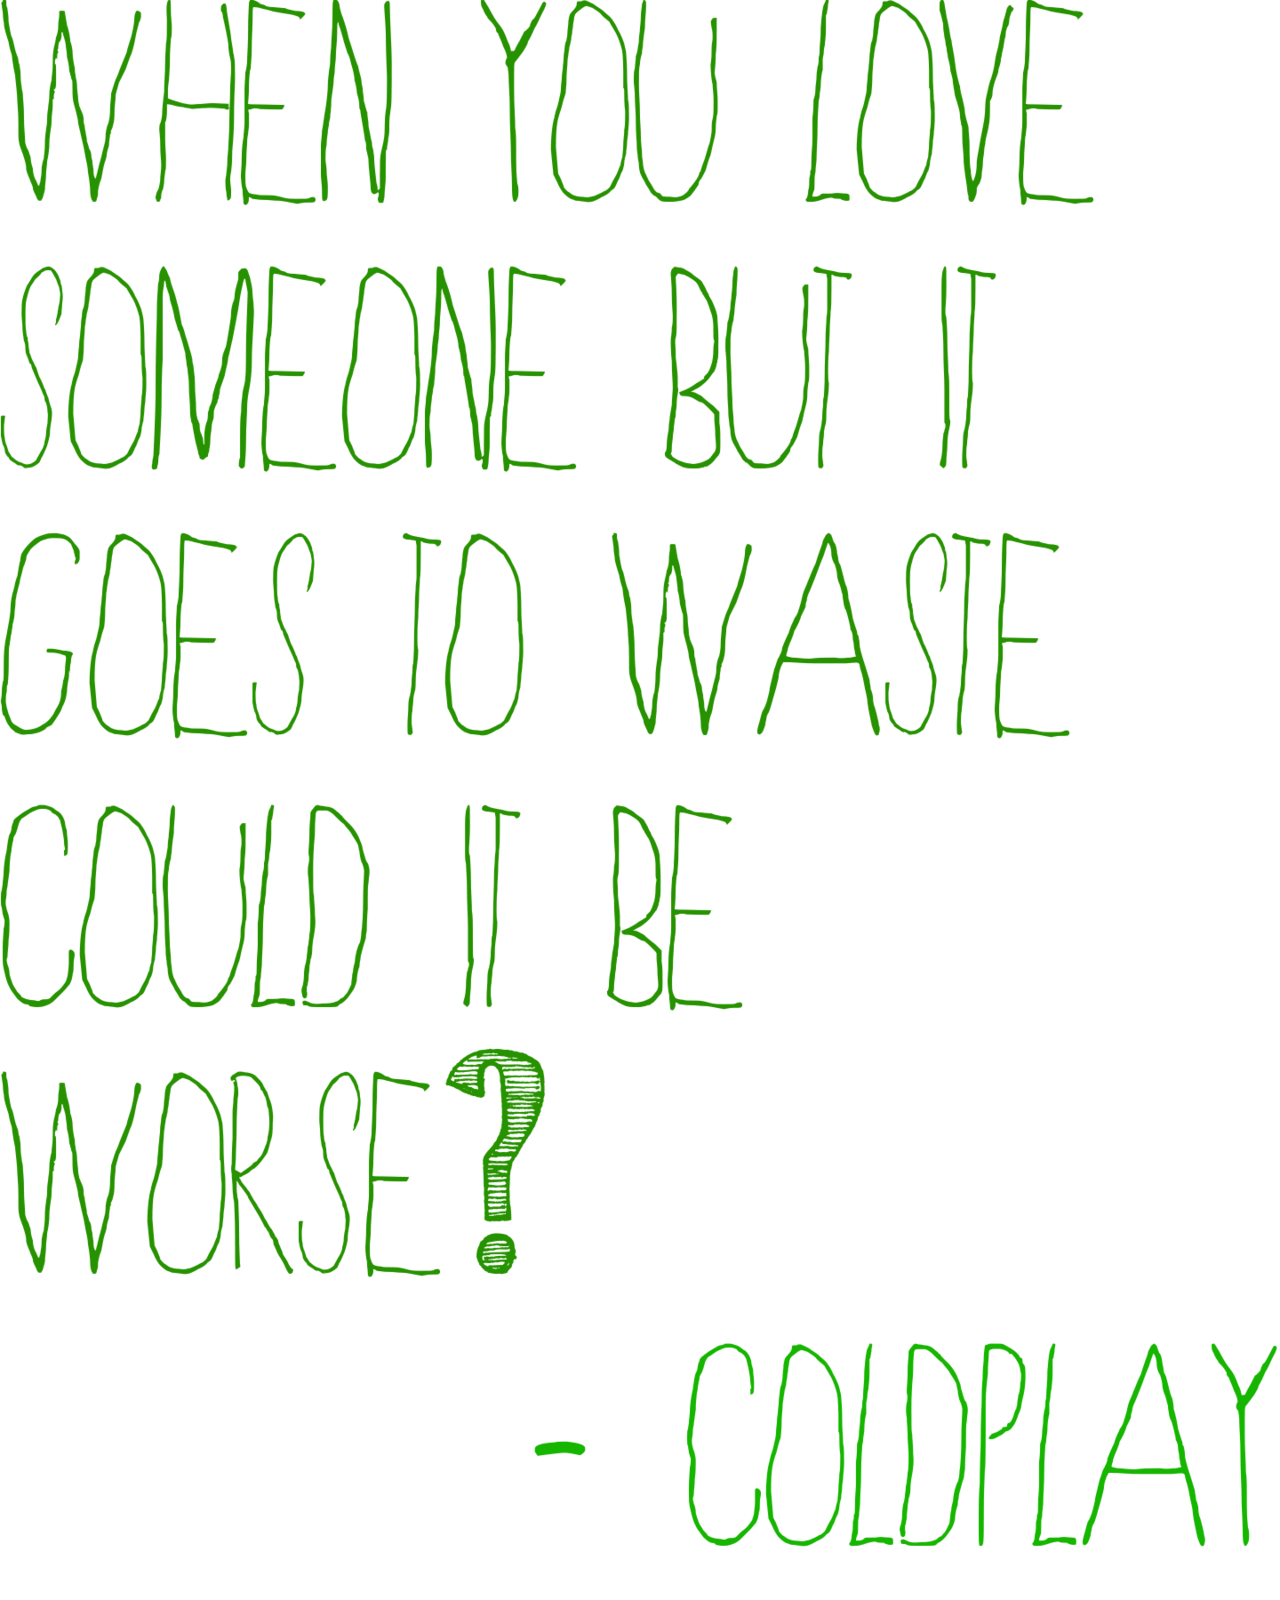 When You Love Someone But It Goes To Waste Could It Be Worse Coldplay Fix You Coldplay Lyrics When You Love Loving Someone